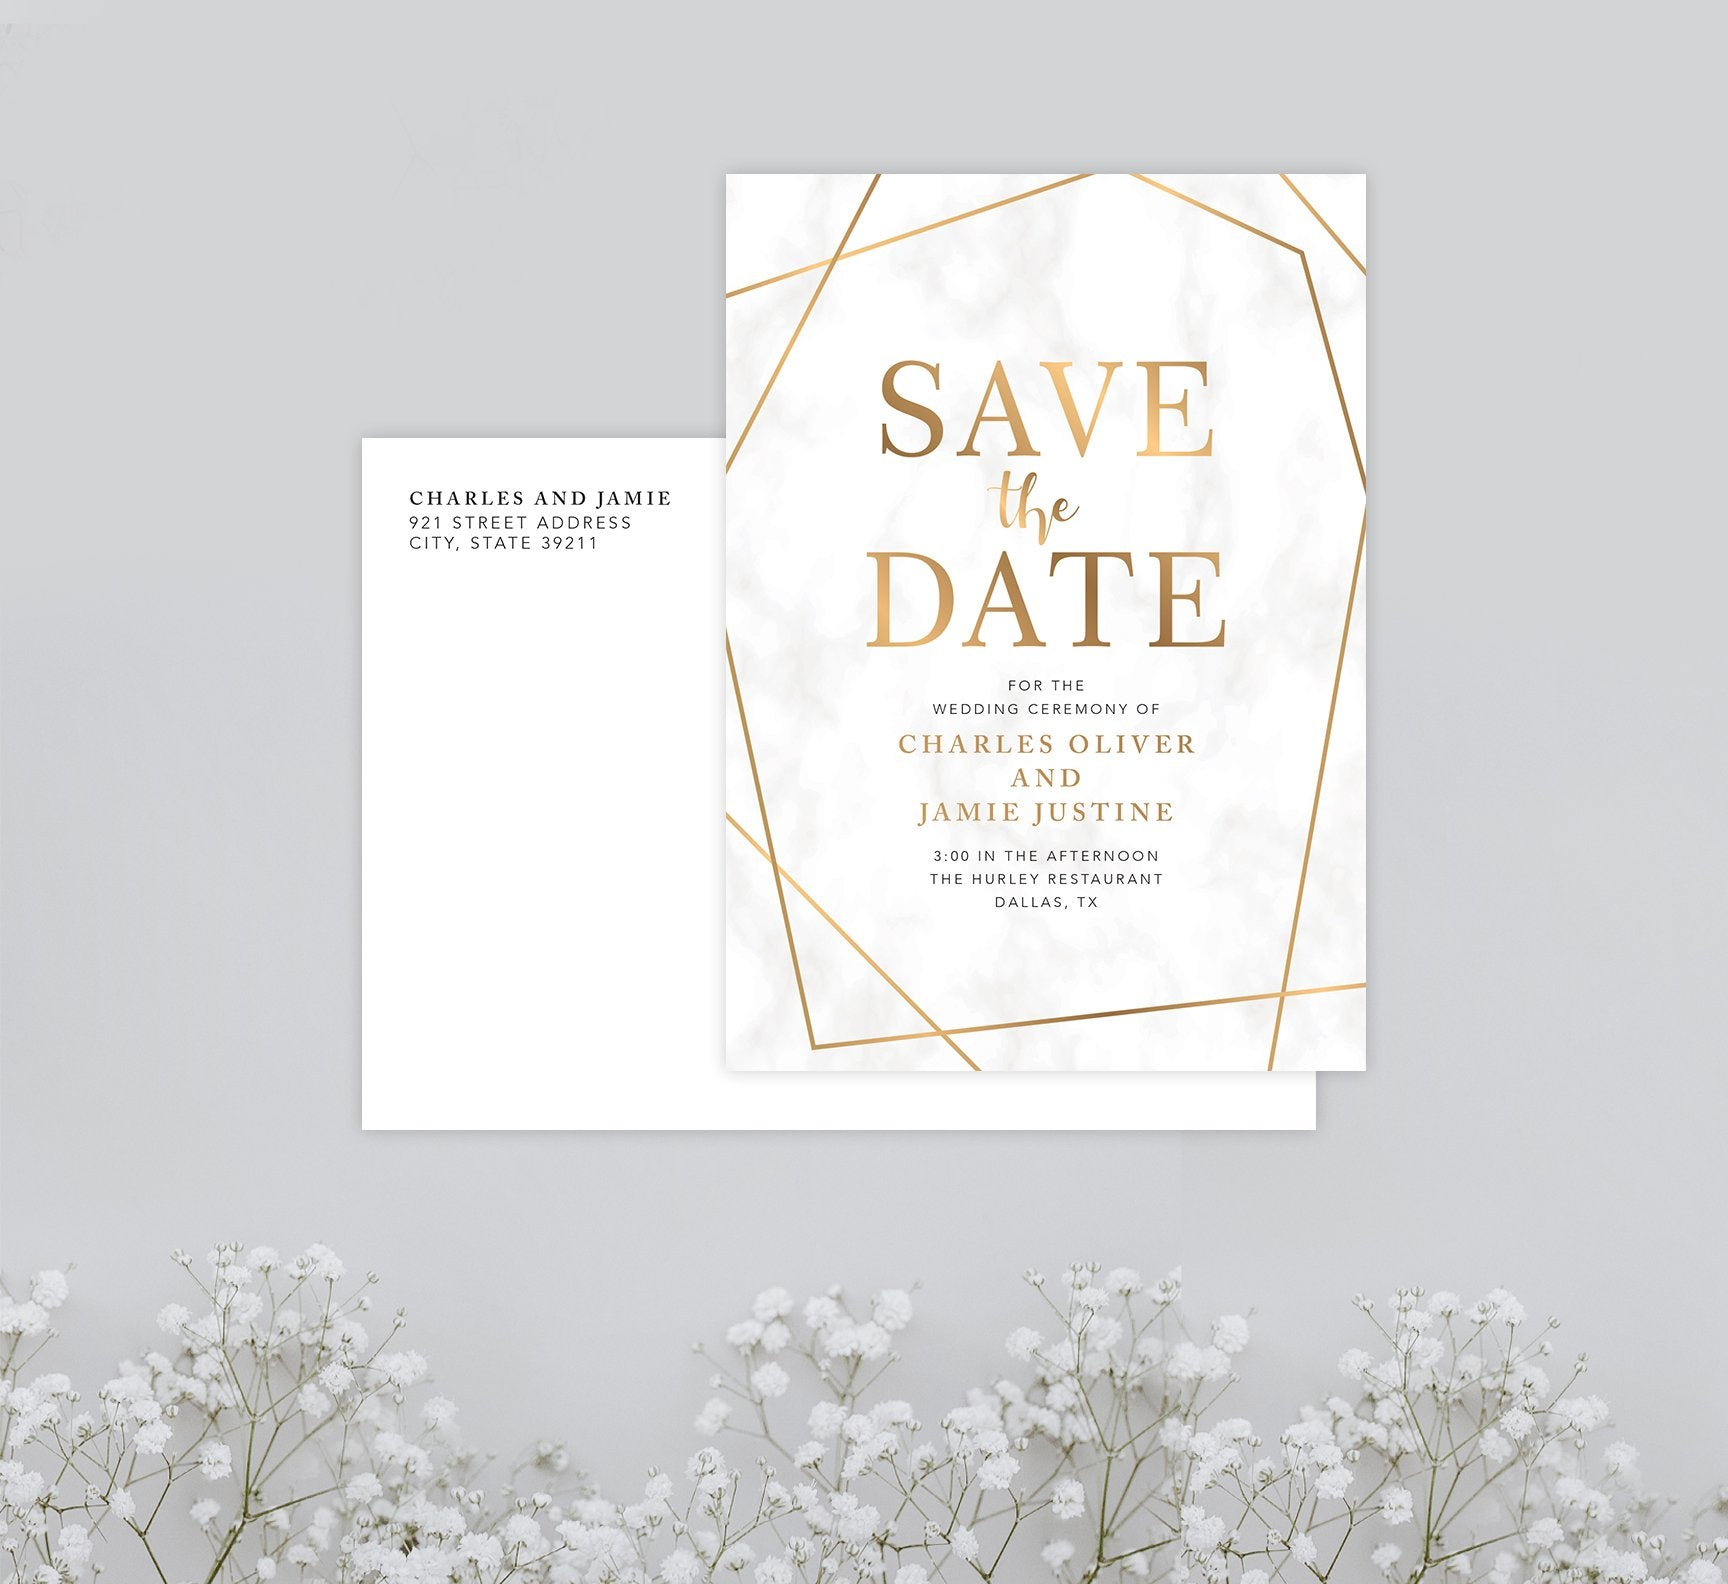 Precious Marble Save the Date Card Mockup